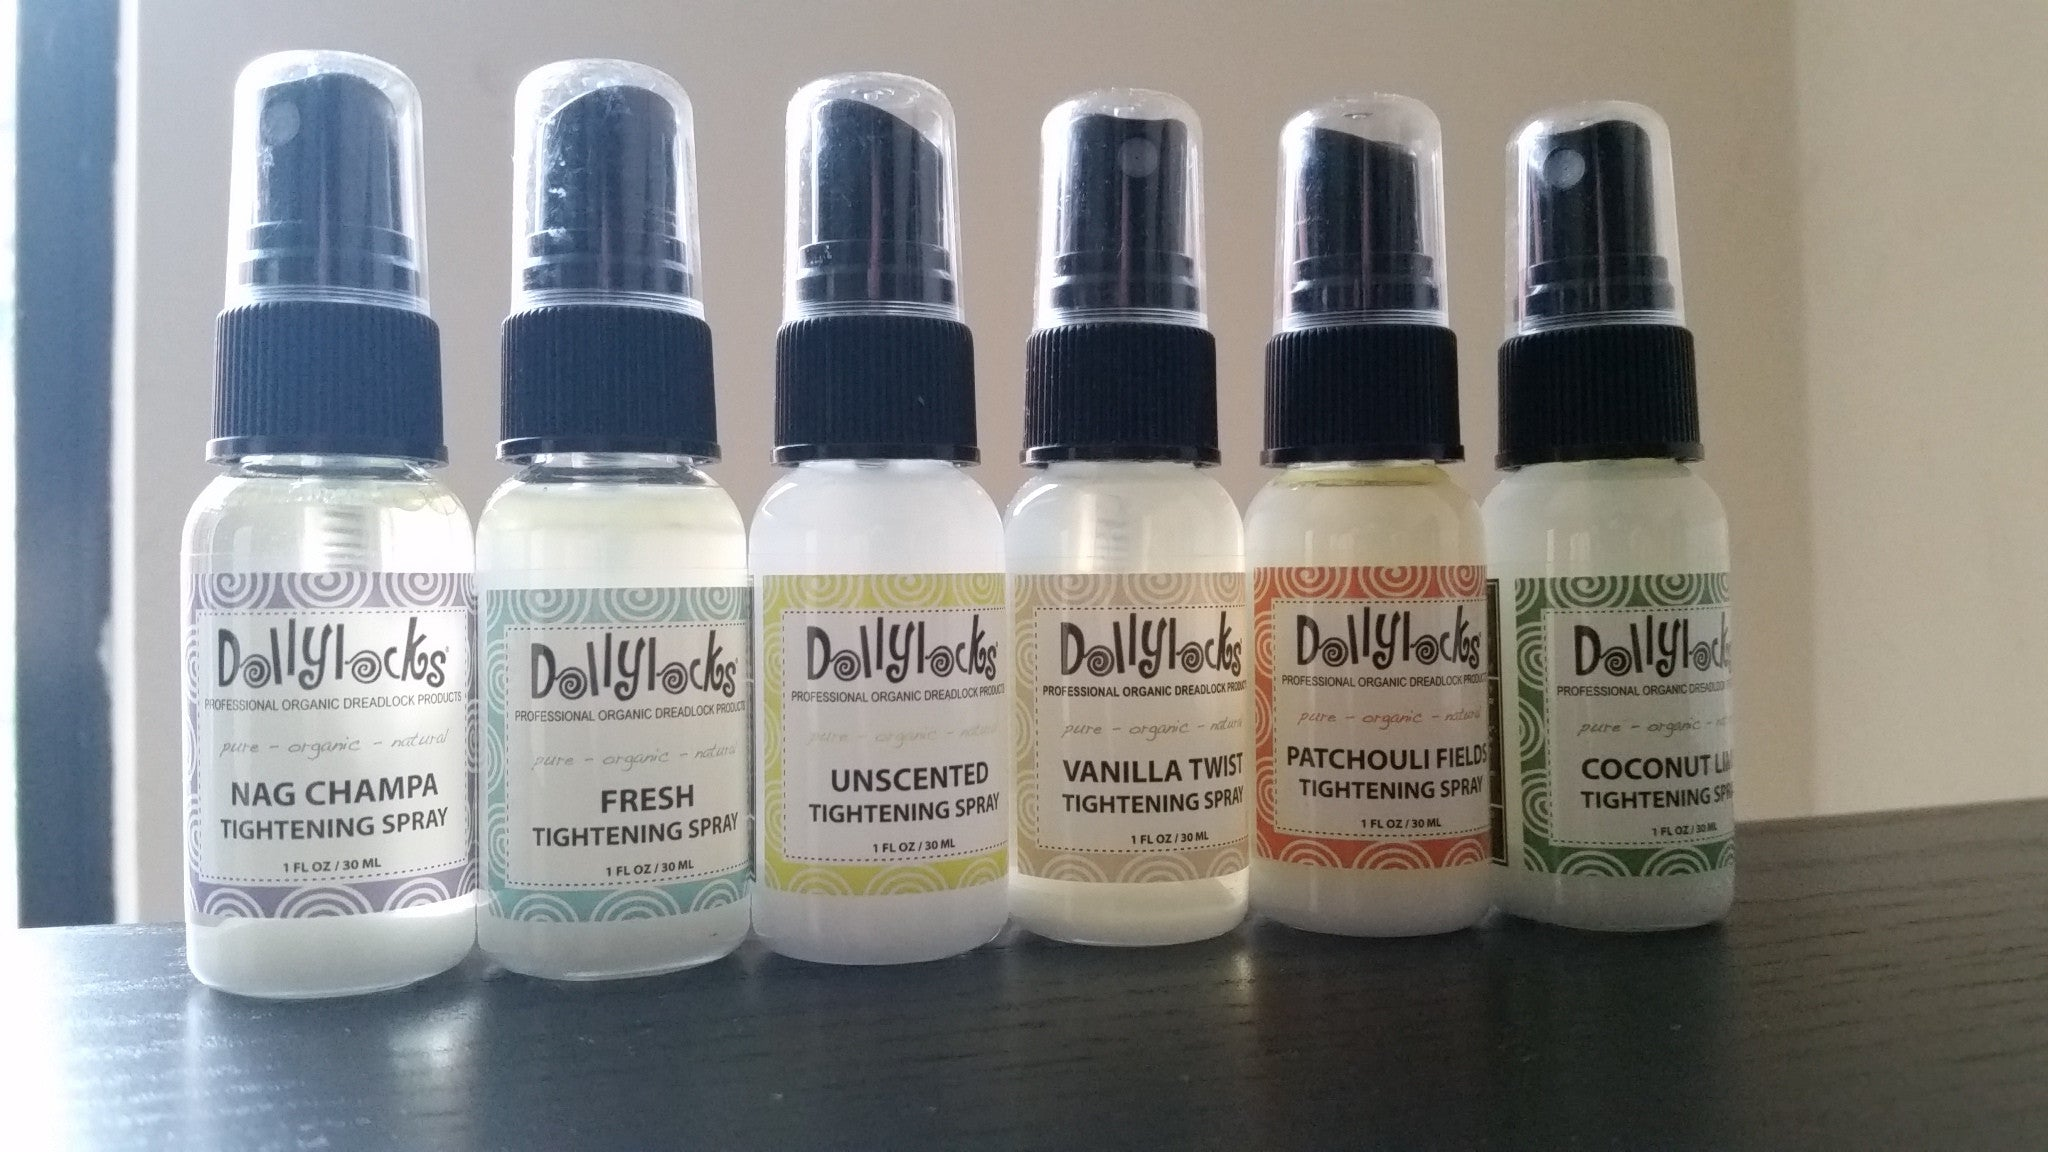 Dollylocks - Dreadlocks Tightening Spray Travel Size Set With Gift Box (6x 1oz)